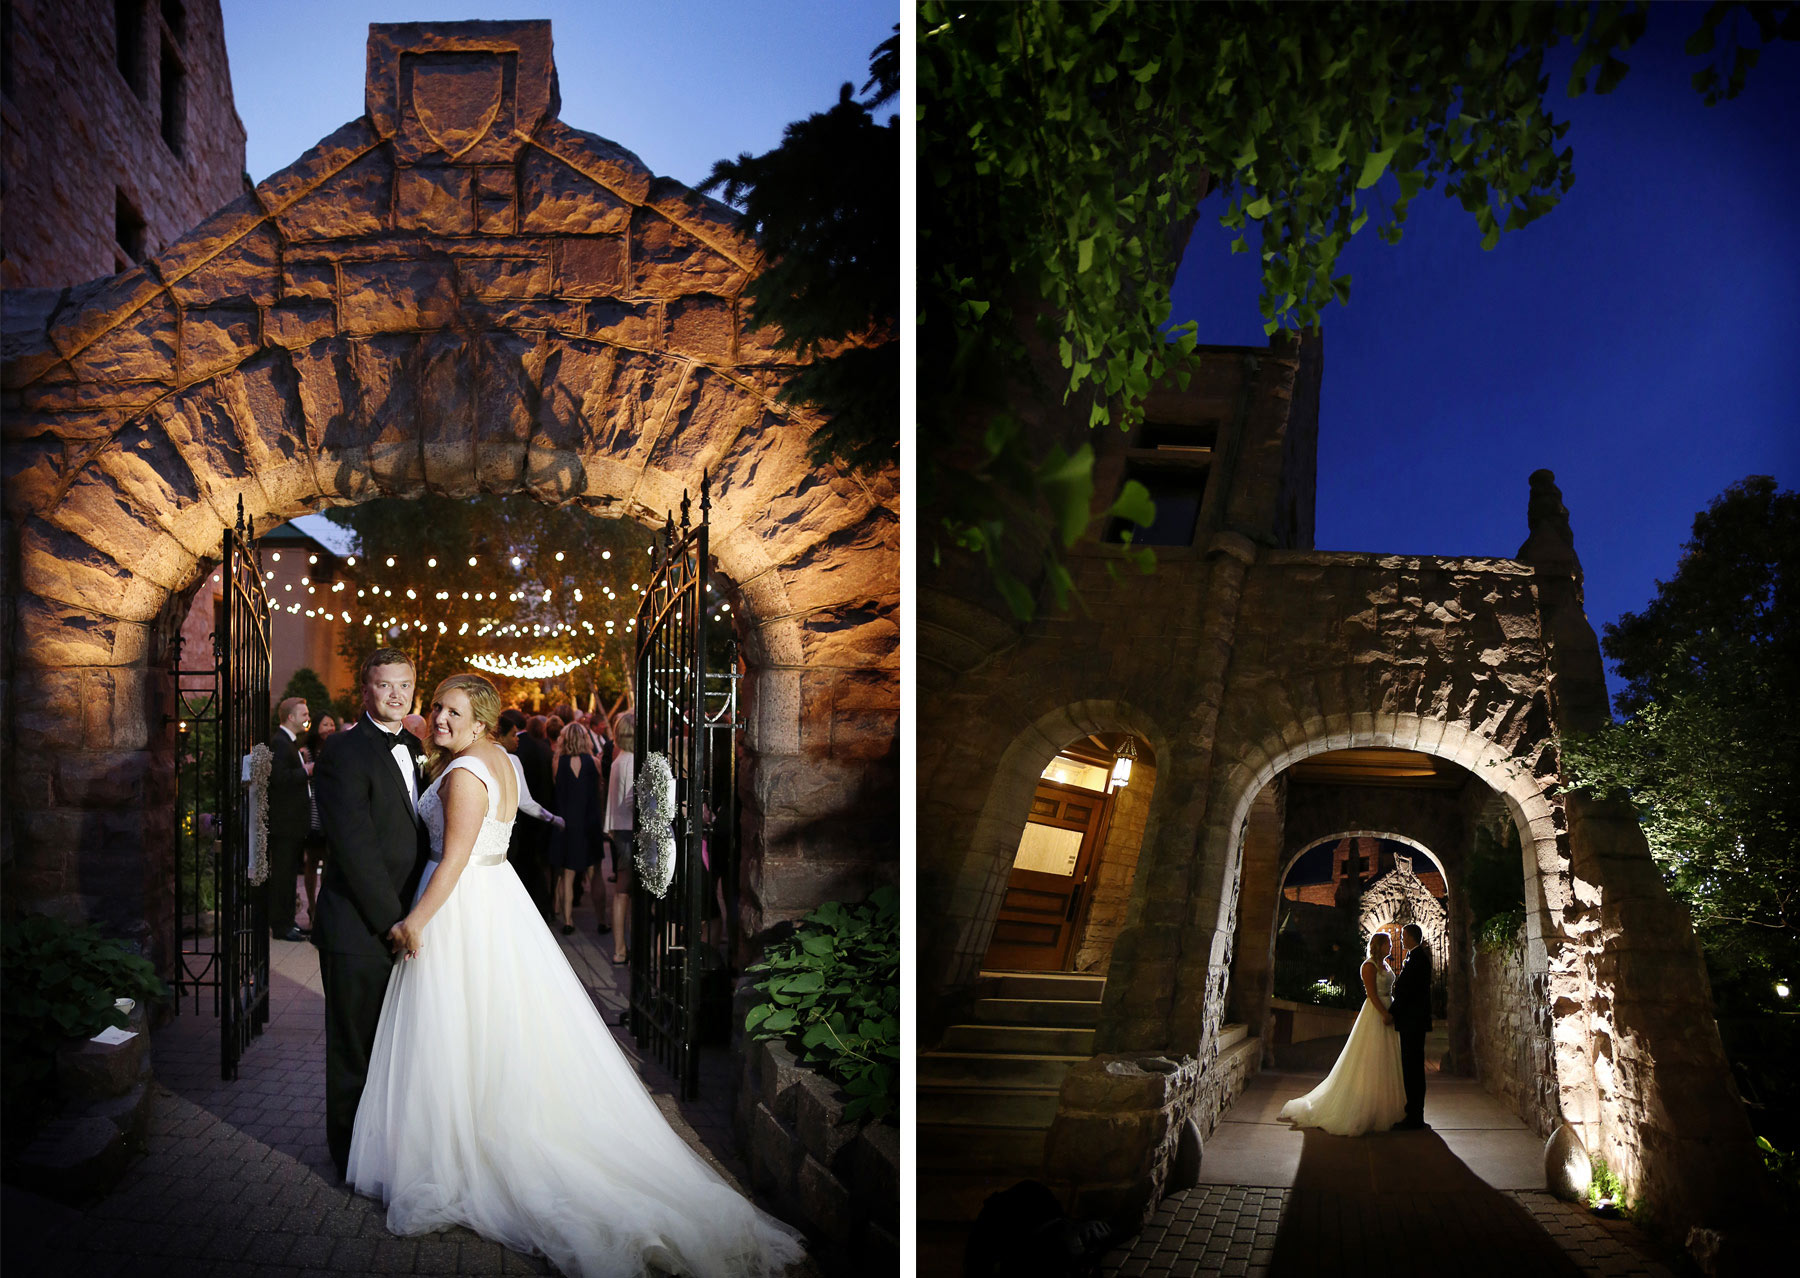 15-Minneapolis-Minnesota-Wedding-Photography-by-Vick-Photography-Van-Dusen-Mansion-Outdoor-Reception-Taryn-&-Scott.jpg